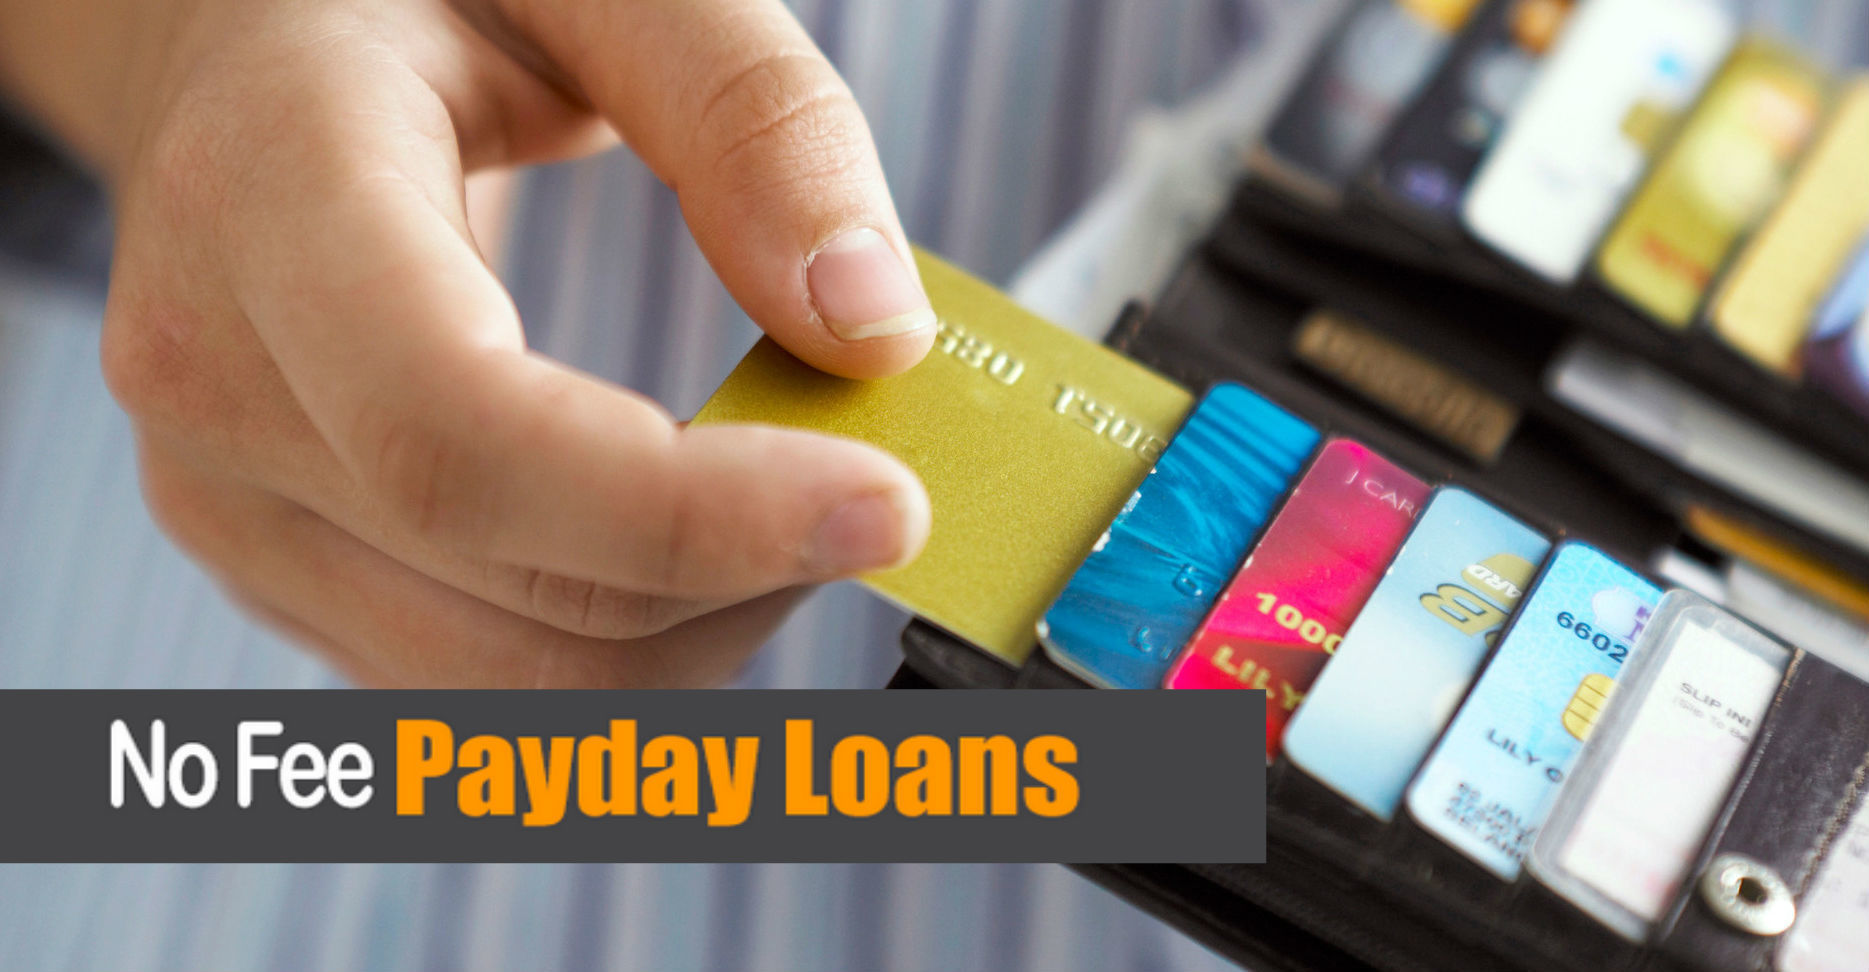 Are Direct Payday Lenders Regulated?